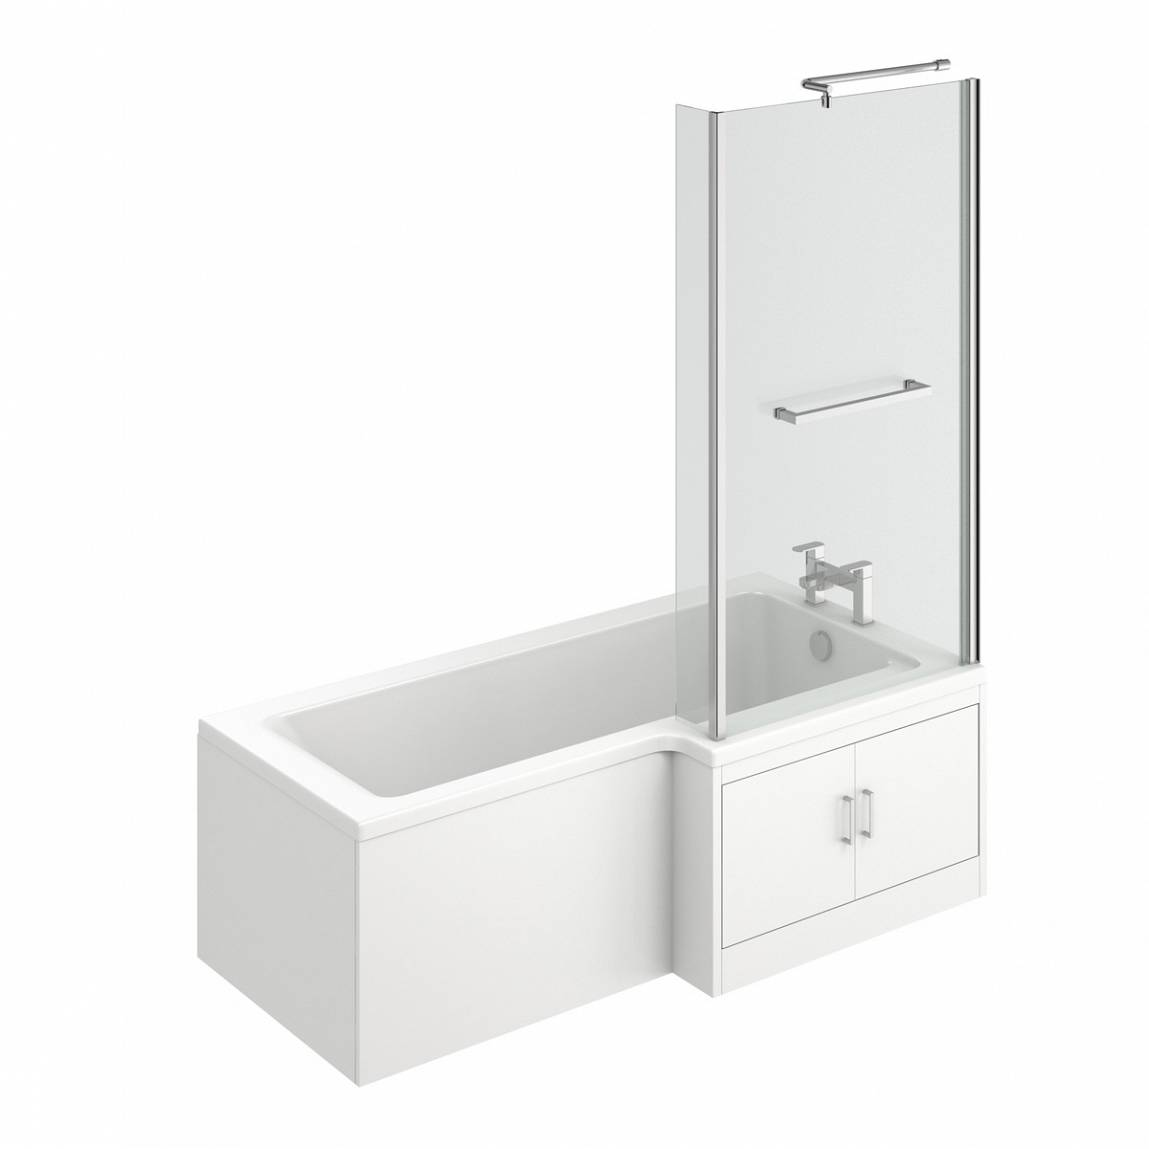 Image of MySpace Water Saving L Shape Shower Bath Right Hand with Storage Panel & 6mm Screen with Towel Rail